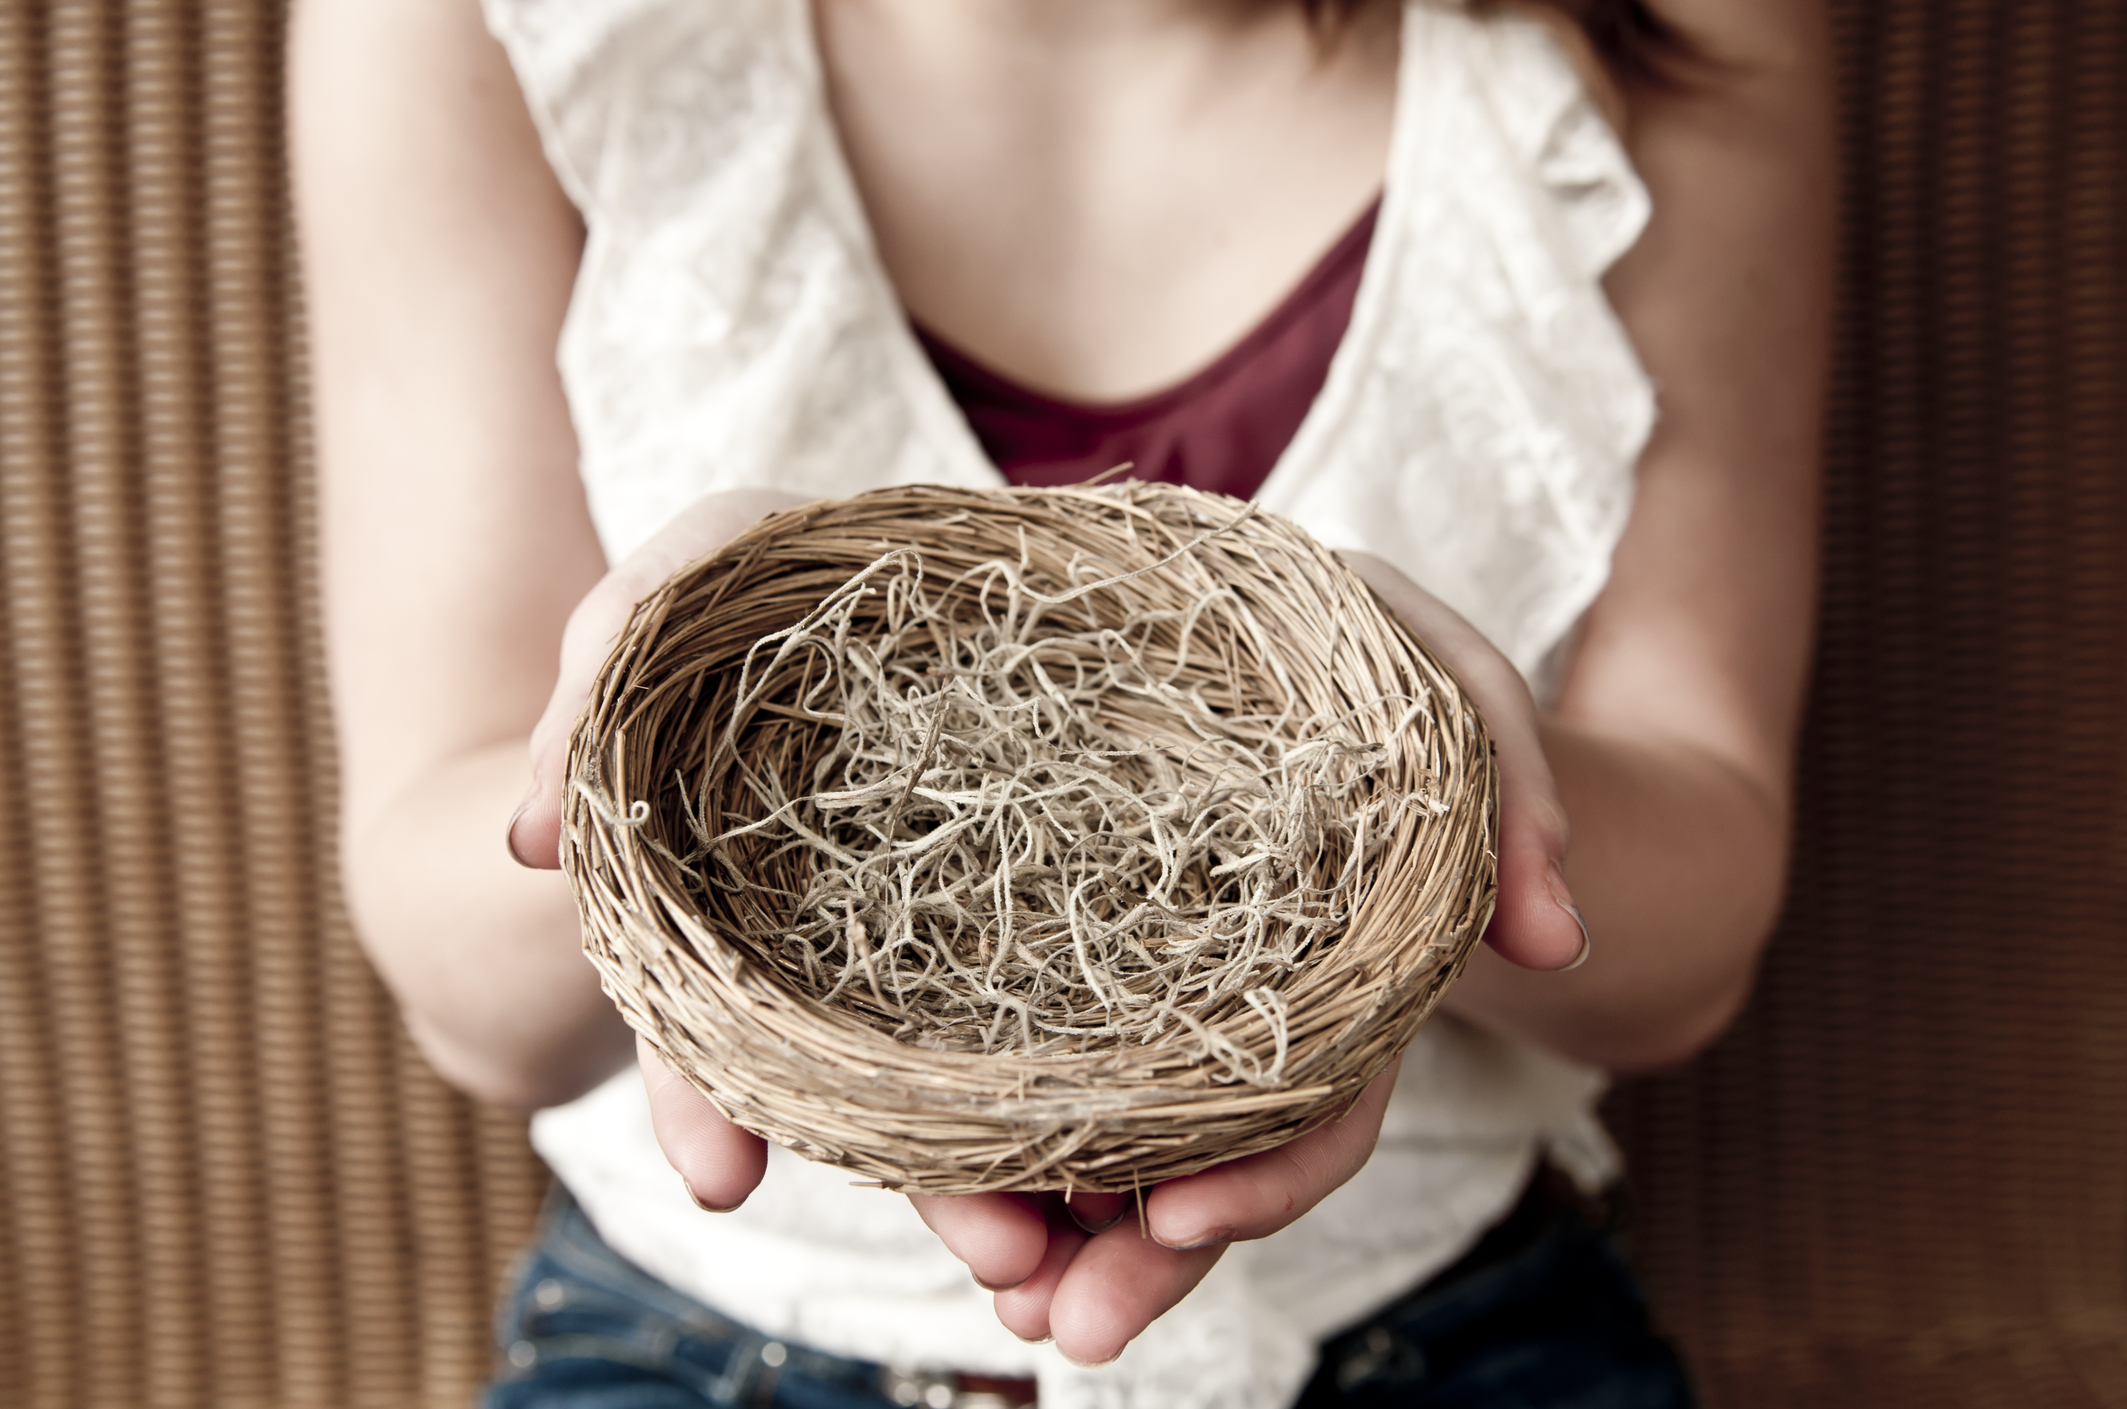 "Photo <a href=""https://www.dreamstime.com/royalty-free-stock-photography-empty-nest-image24628867"">24628867</a> © <a href=""https://www.dreamstime.com/annalisaball_info"">Annalisaball</a> - <a href=""https://www.dreamstime.com/"">Dreamstime.com</a>"